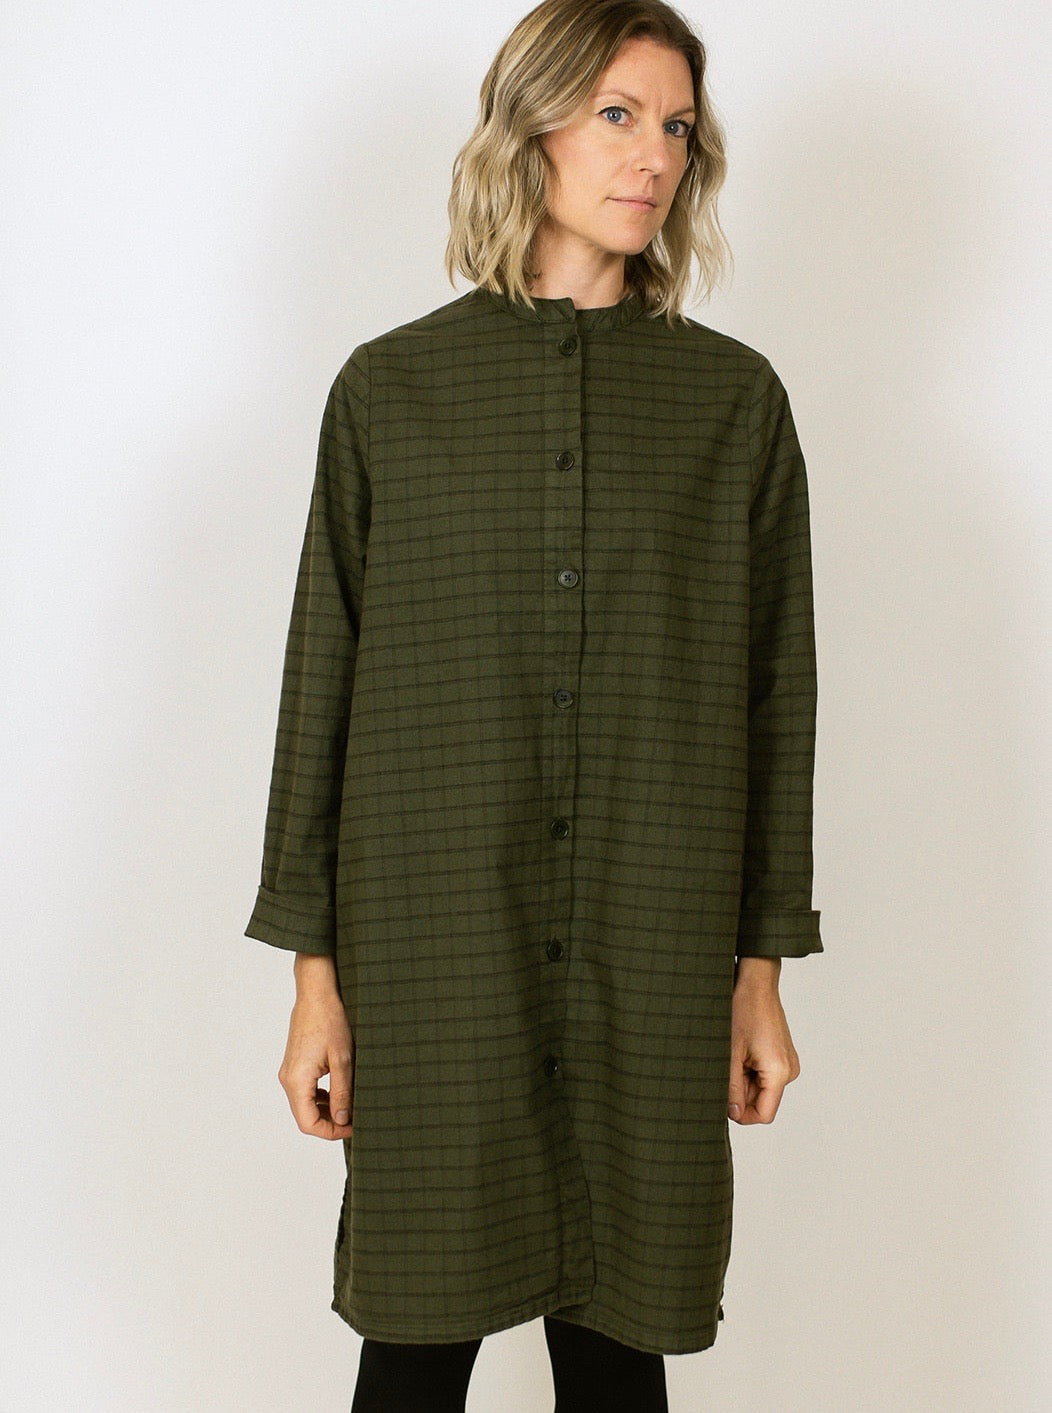 Winona Dress/Jacket - Lake Green